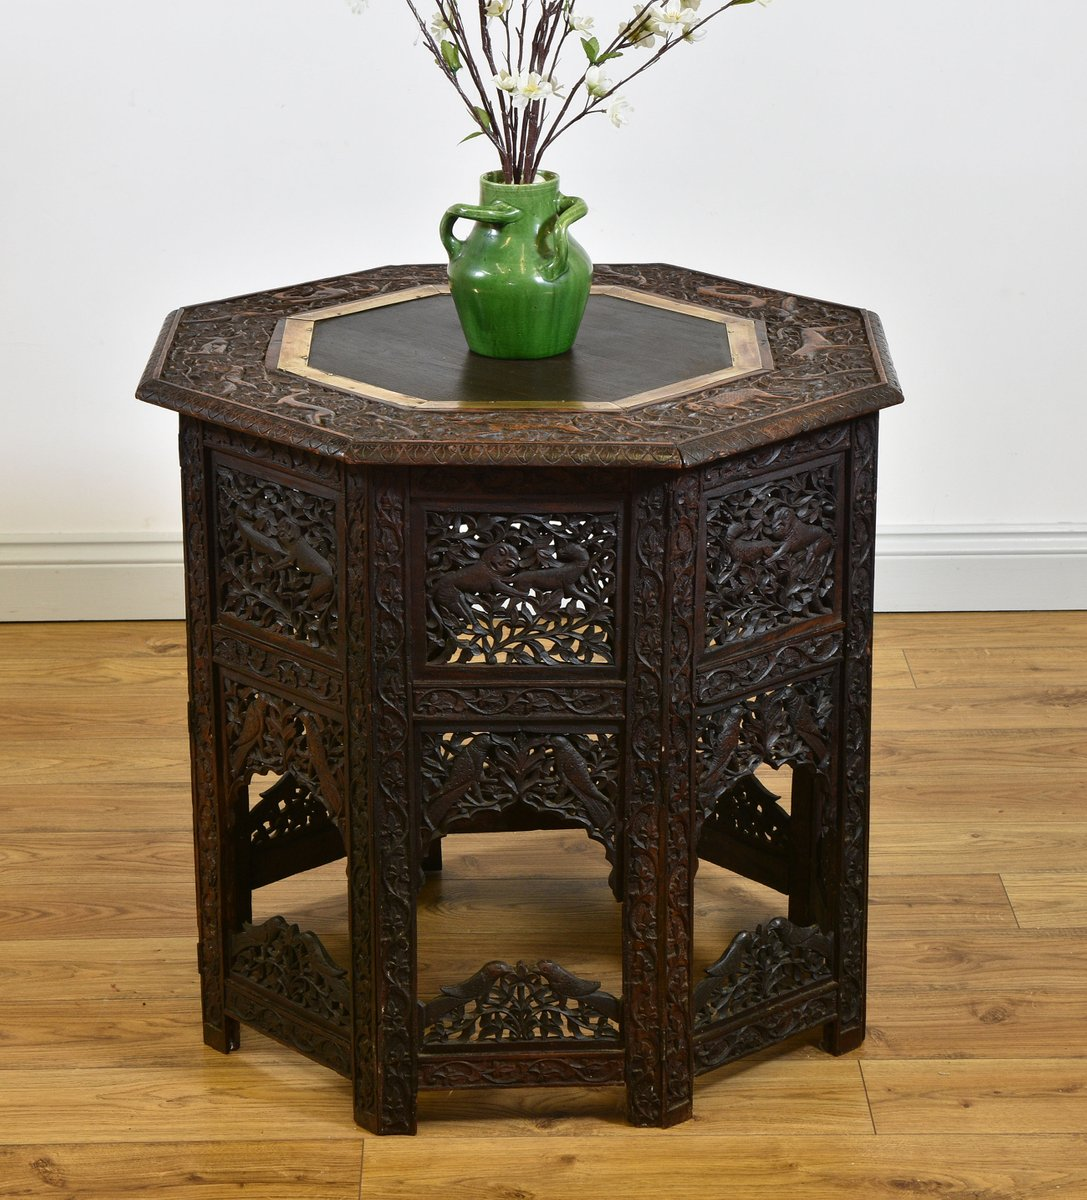 Table D'appoint Pliante Castorama Grande Table D 39appoint Octogonale Pliante Anglo Indienne